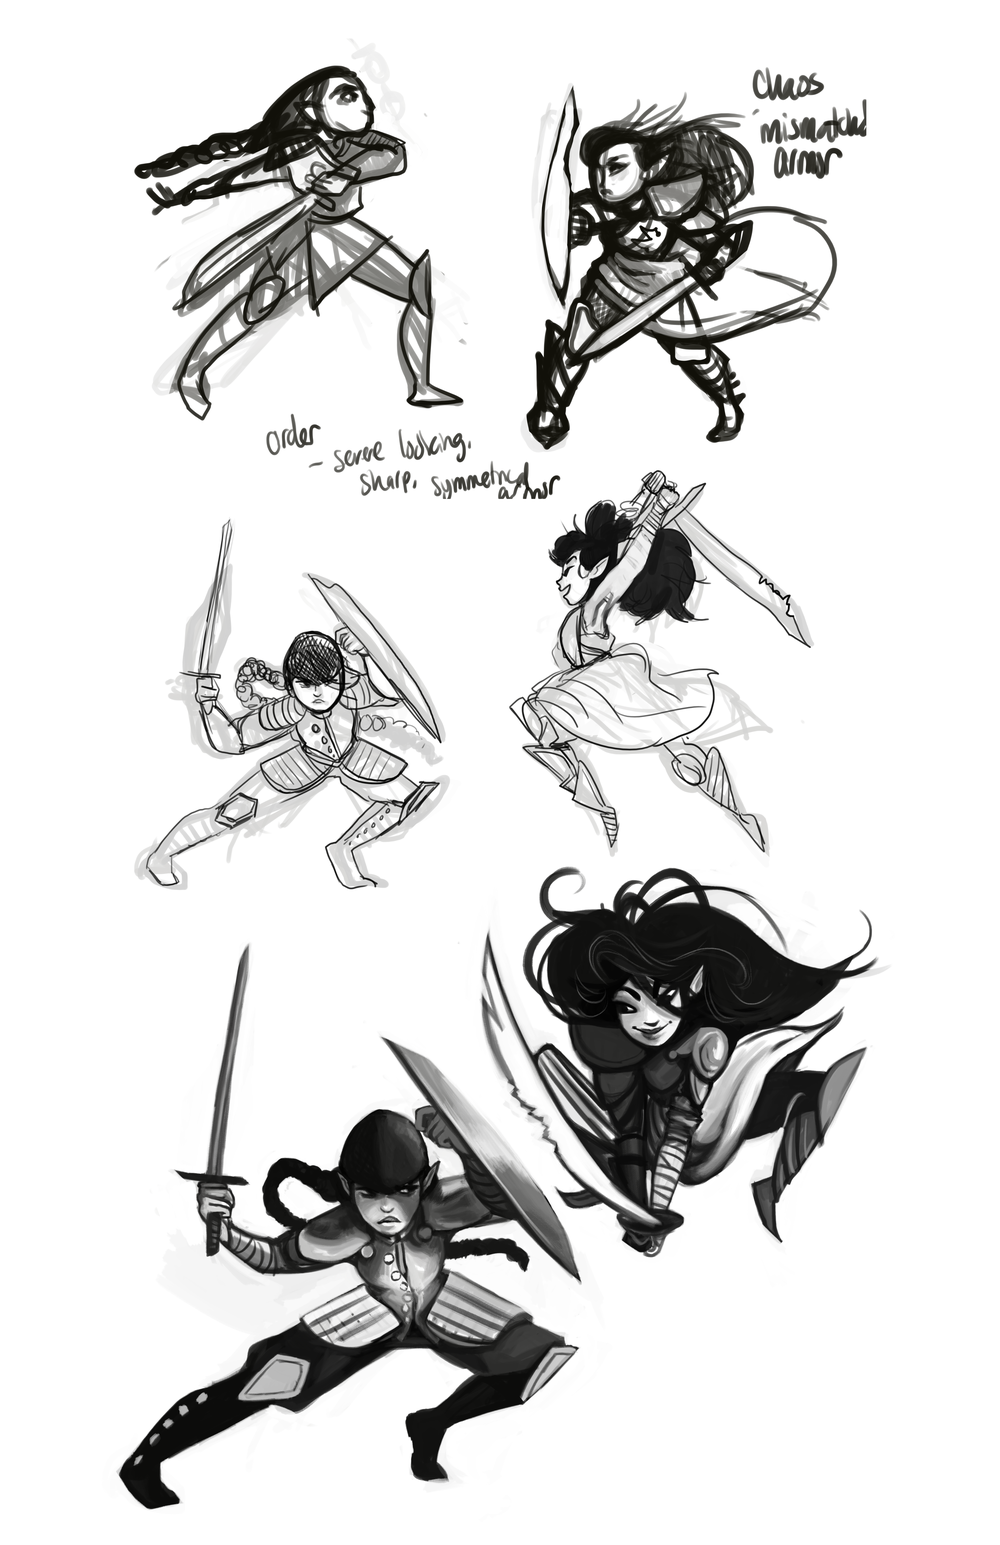 Eyewire Neuroquest Competiton: Character concepts for the personifications of Order and Chaos.